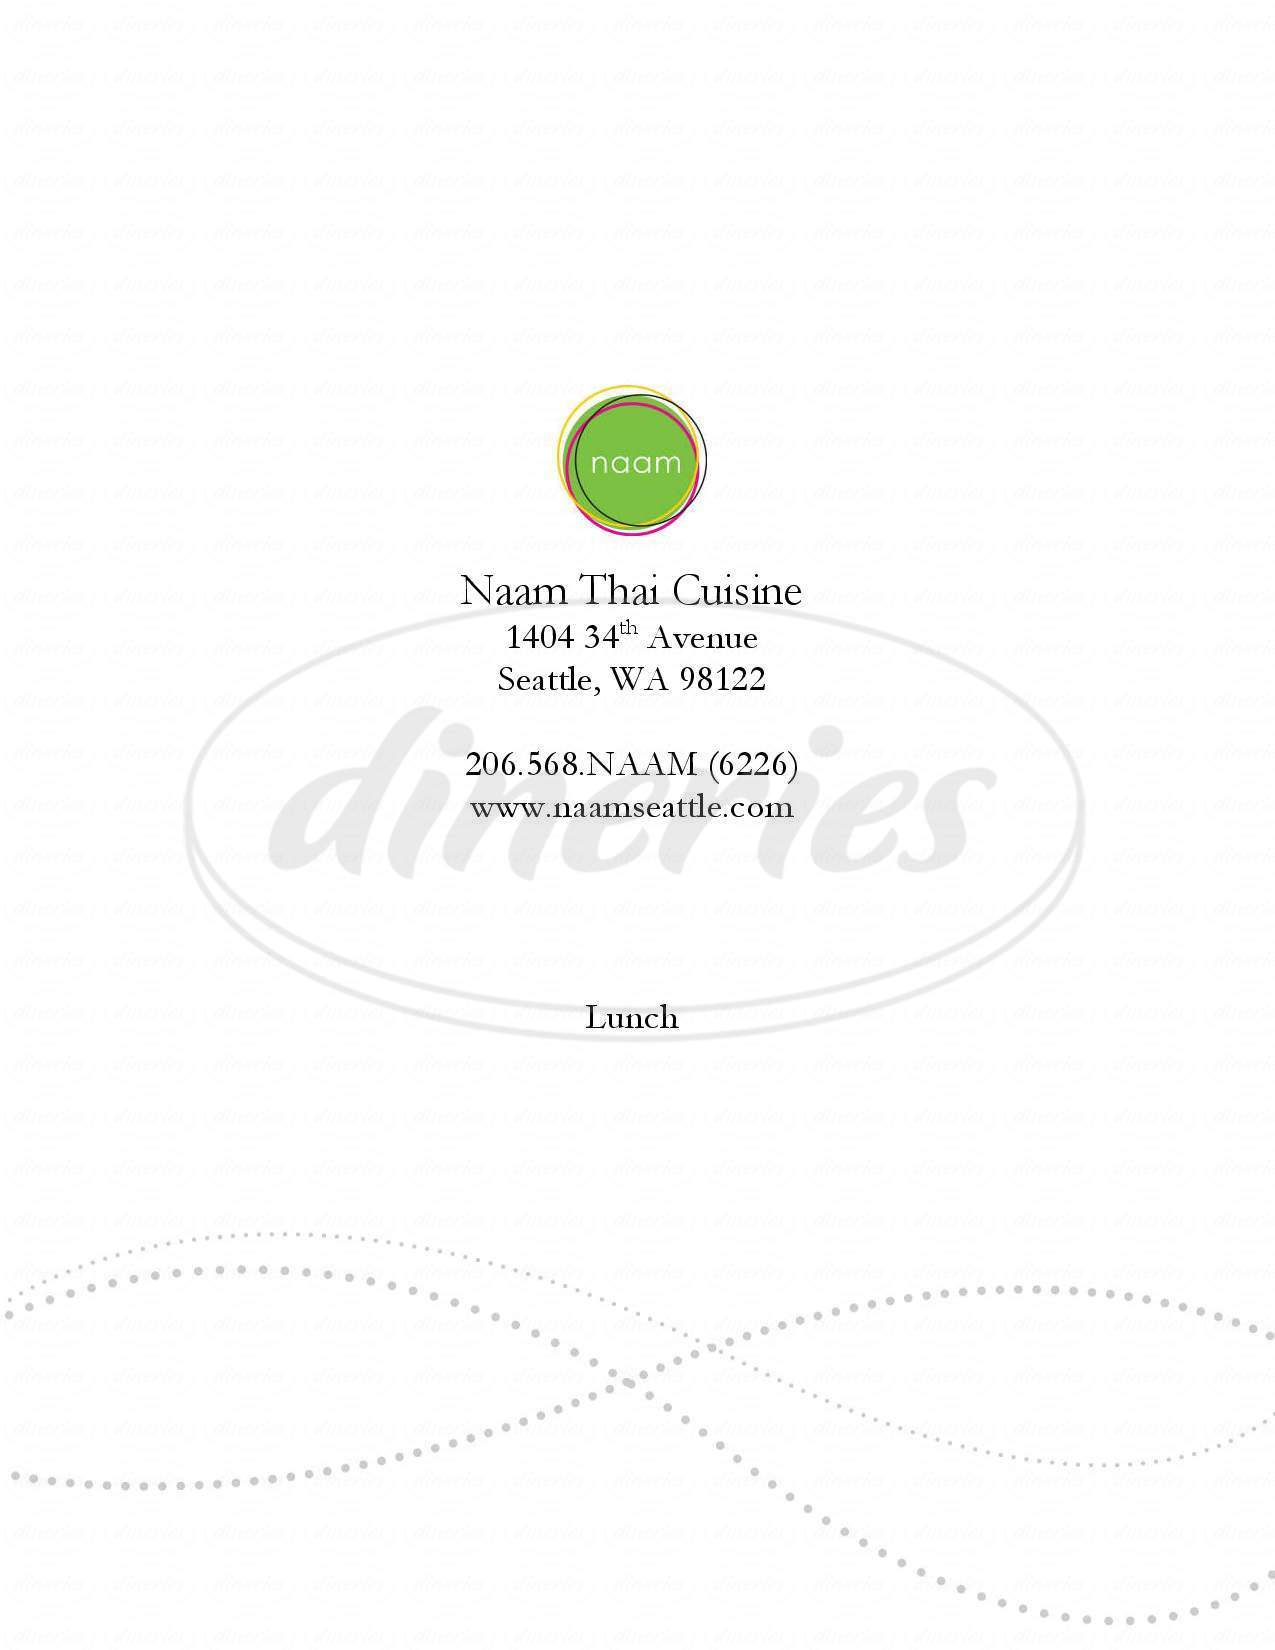 menu for Naam Thai Cuisine